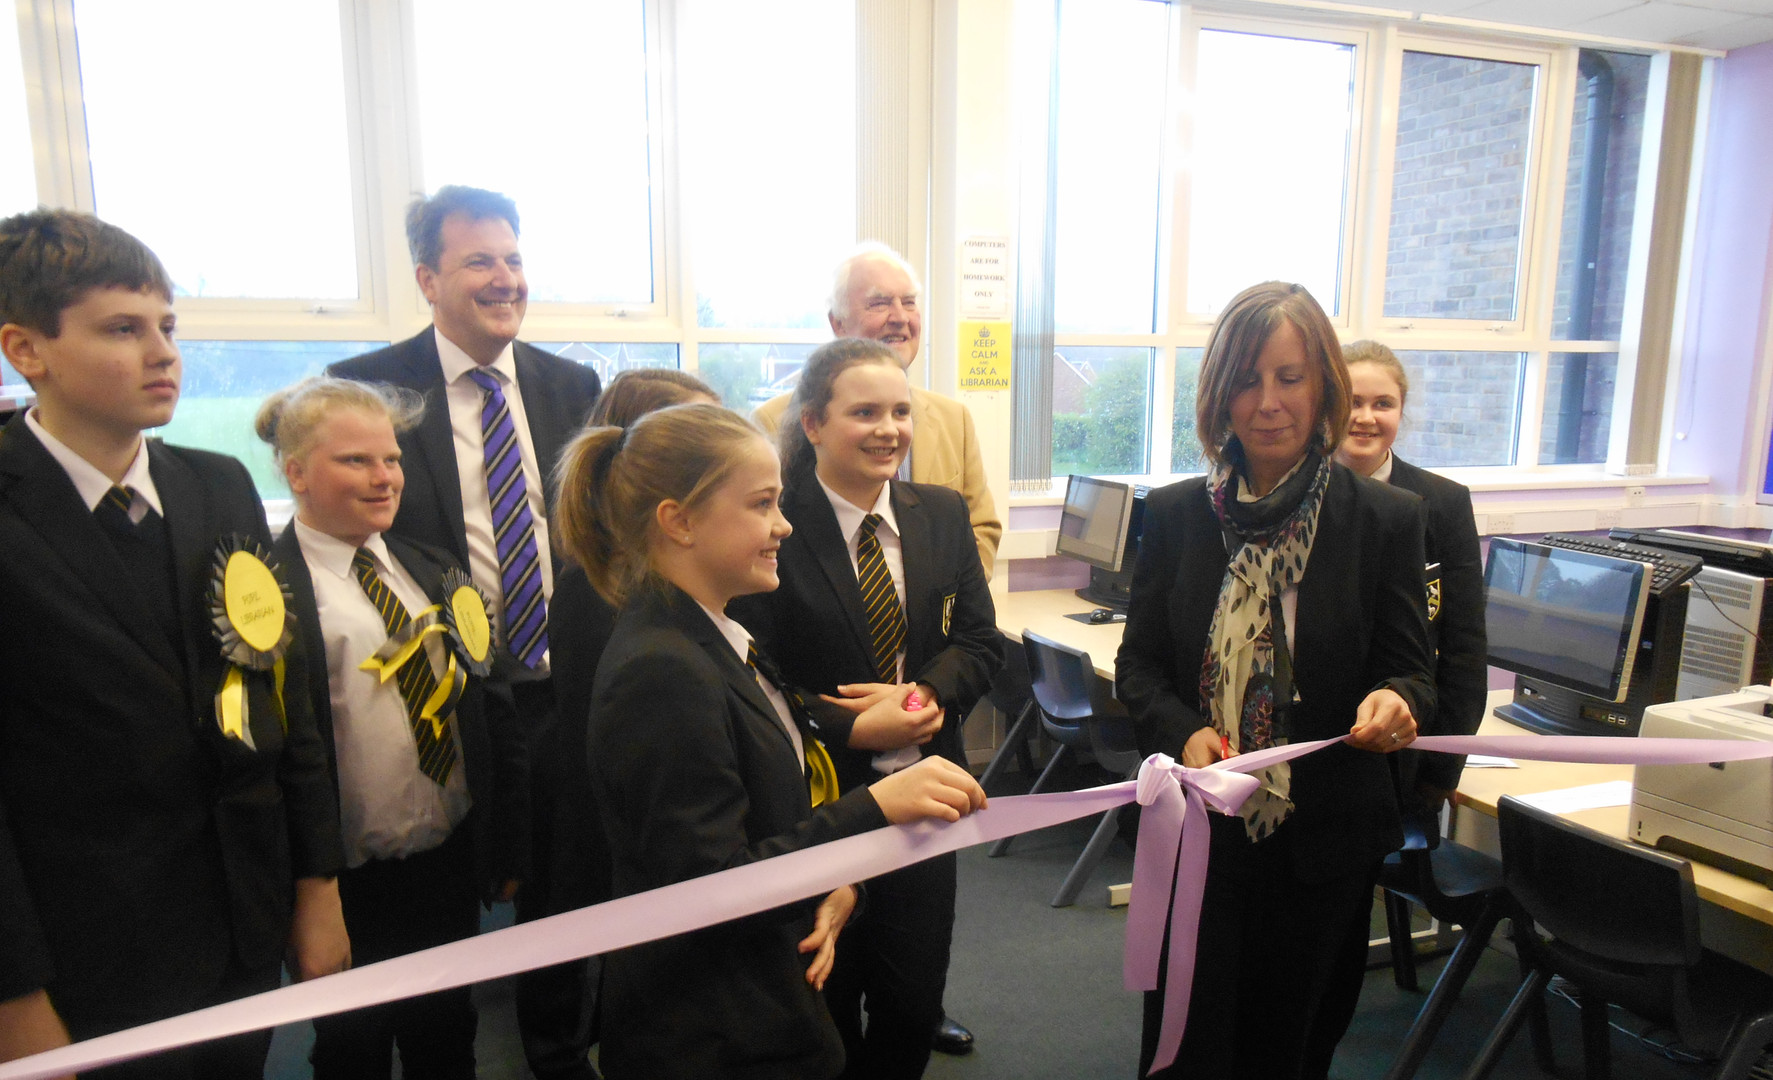 Opening the new Library at Park View Academy